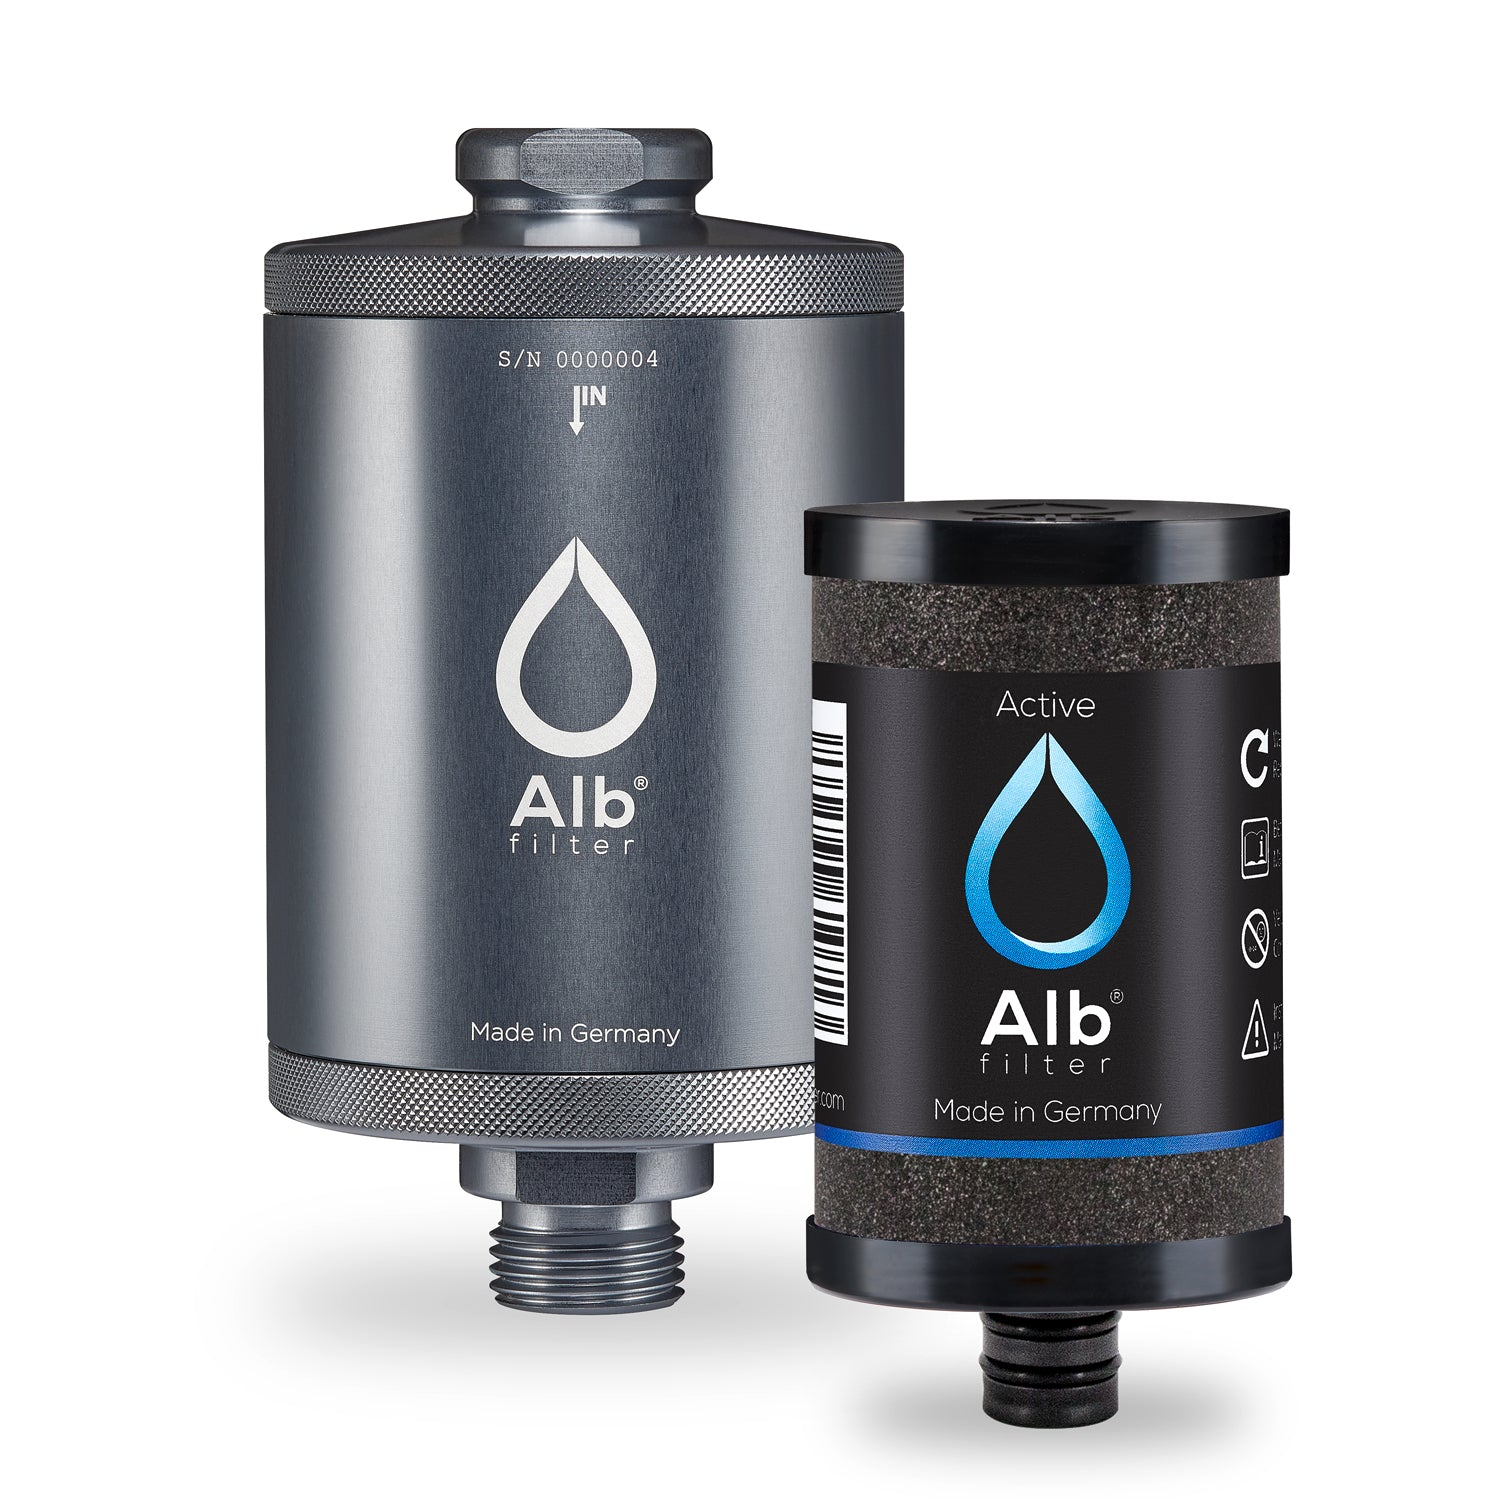 Alb water filter for undertable. Filter housing in titanium colour with Active filter cartridge